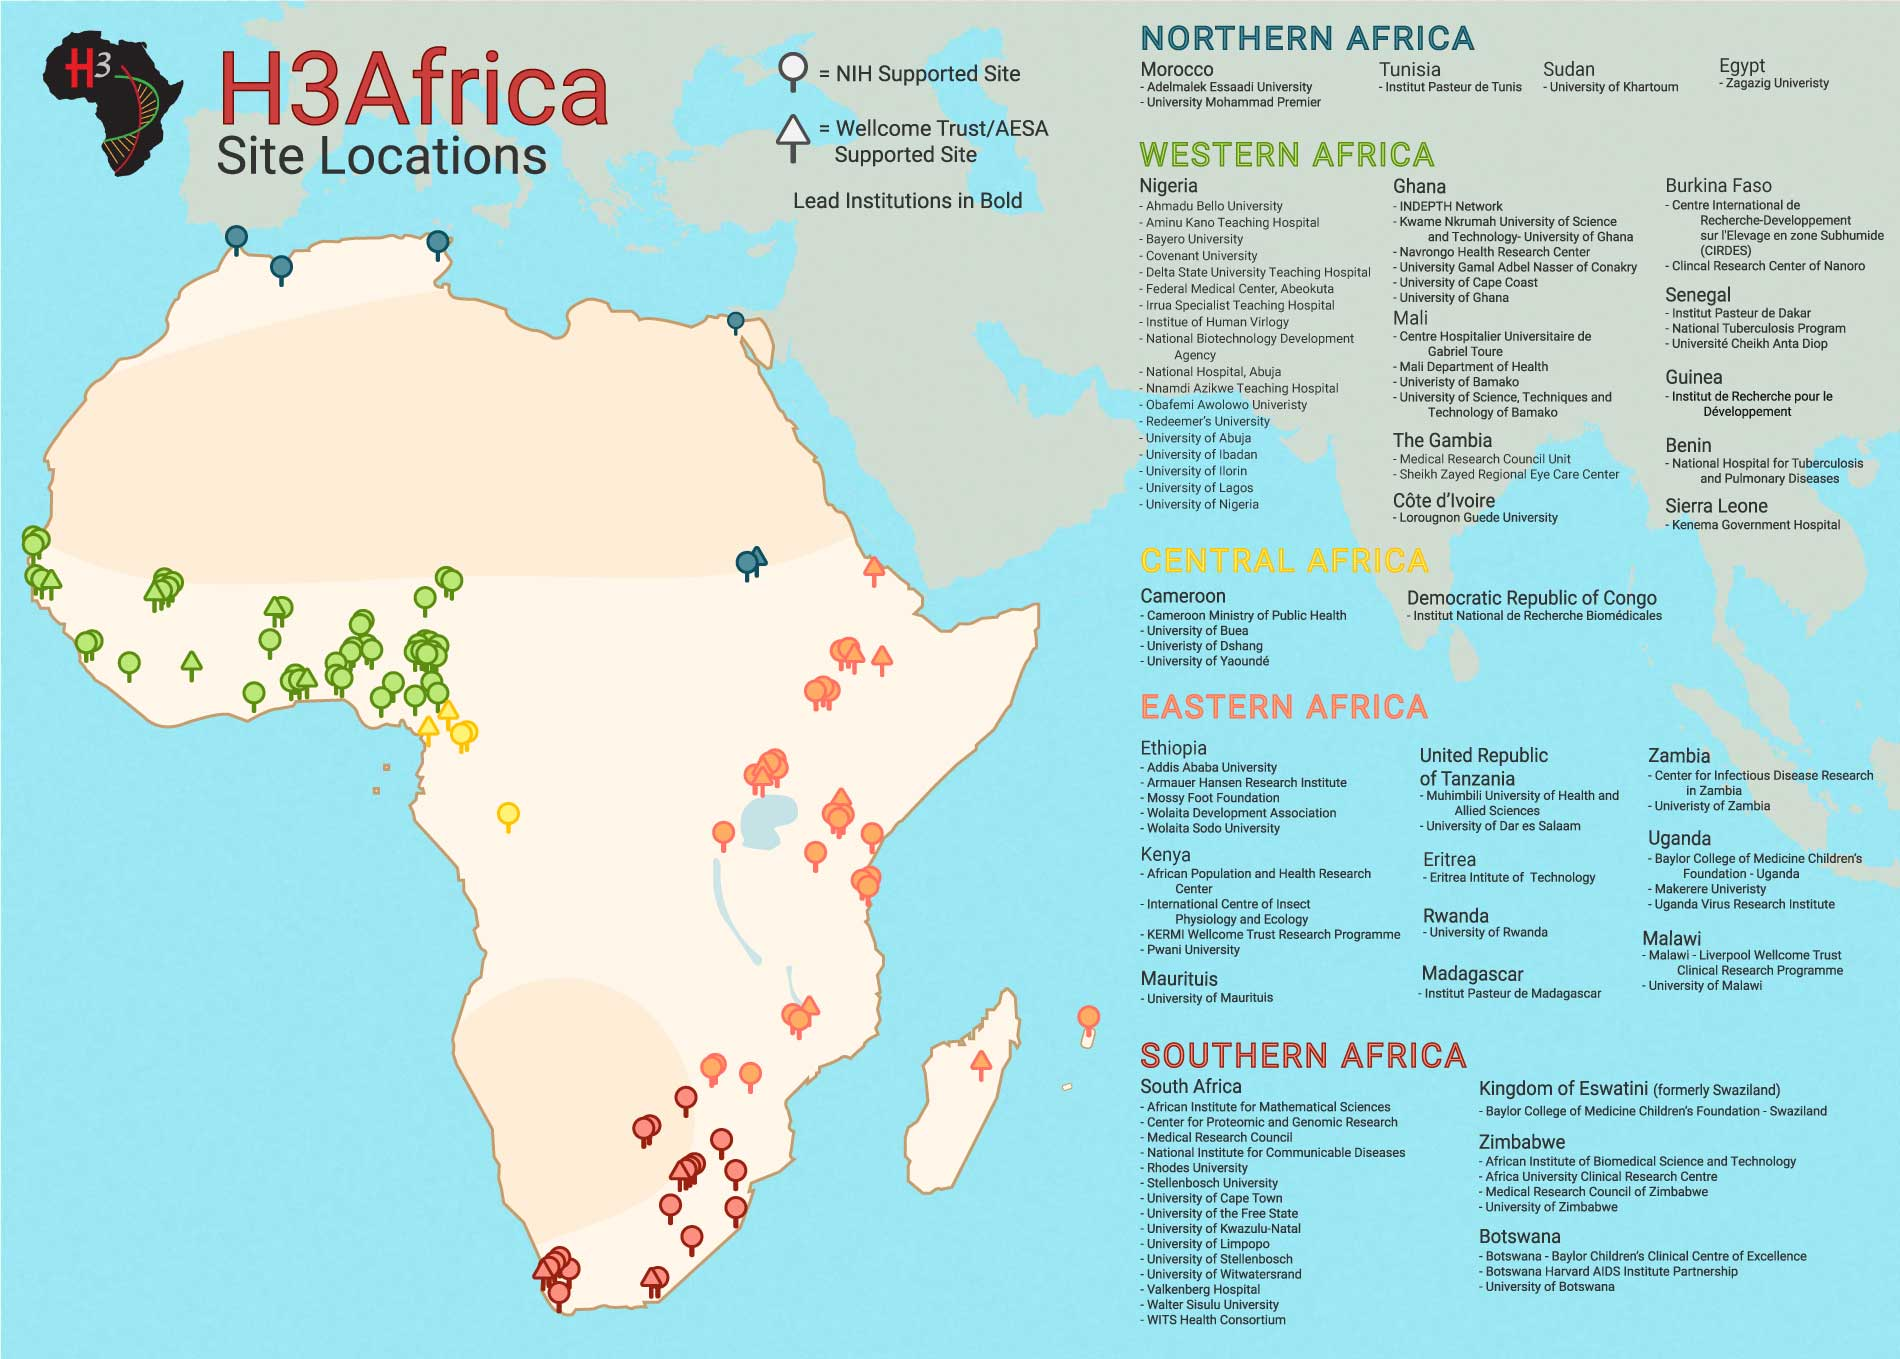 H3Africa Locations map